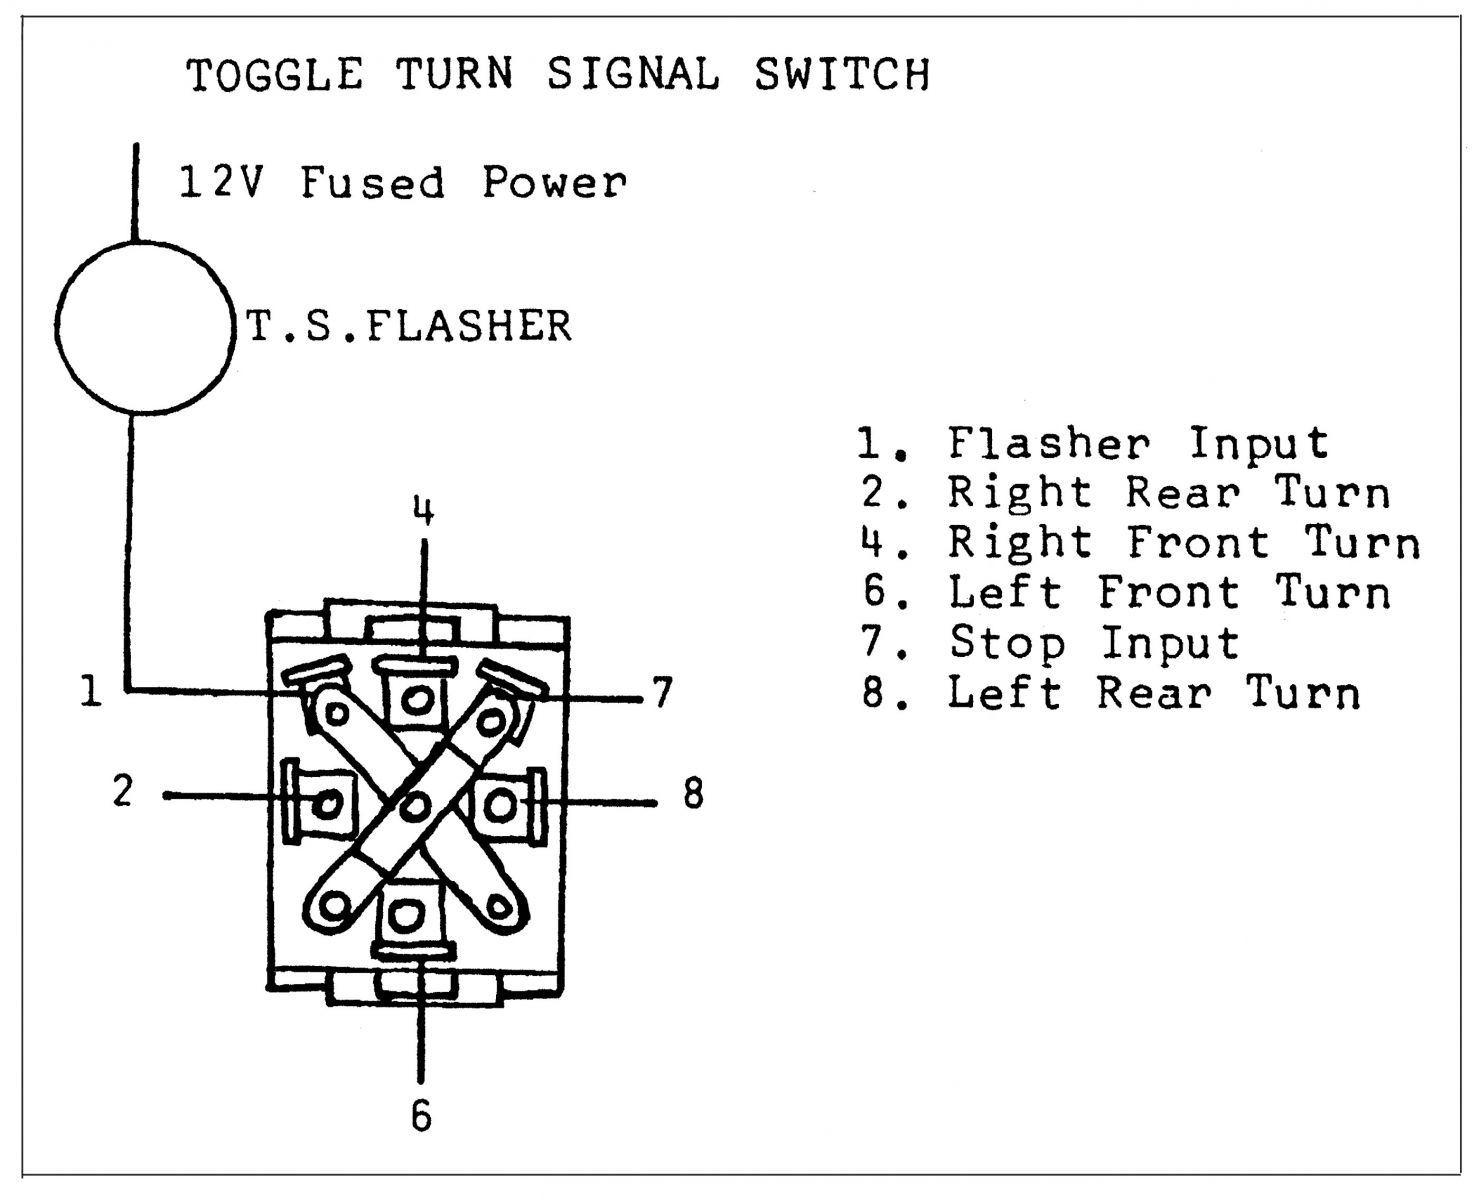 Turn Signals For Early Hot Rods | Hotrod Hotline - On Off On Toggle Switch Wiring Diagram